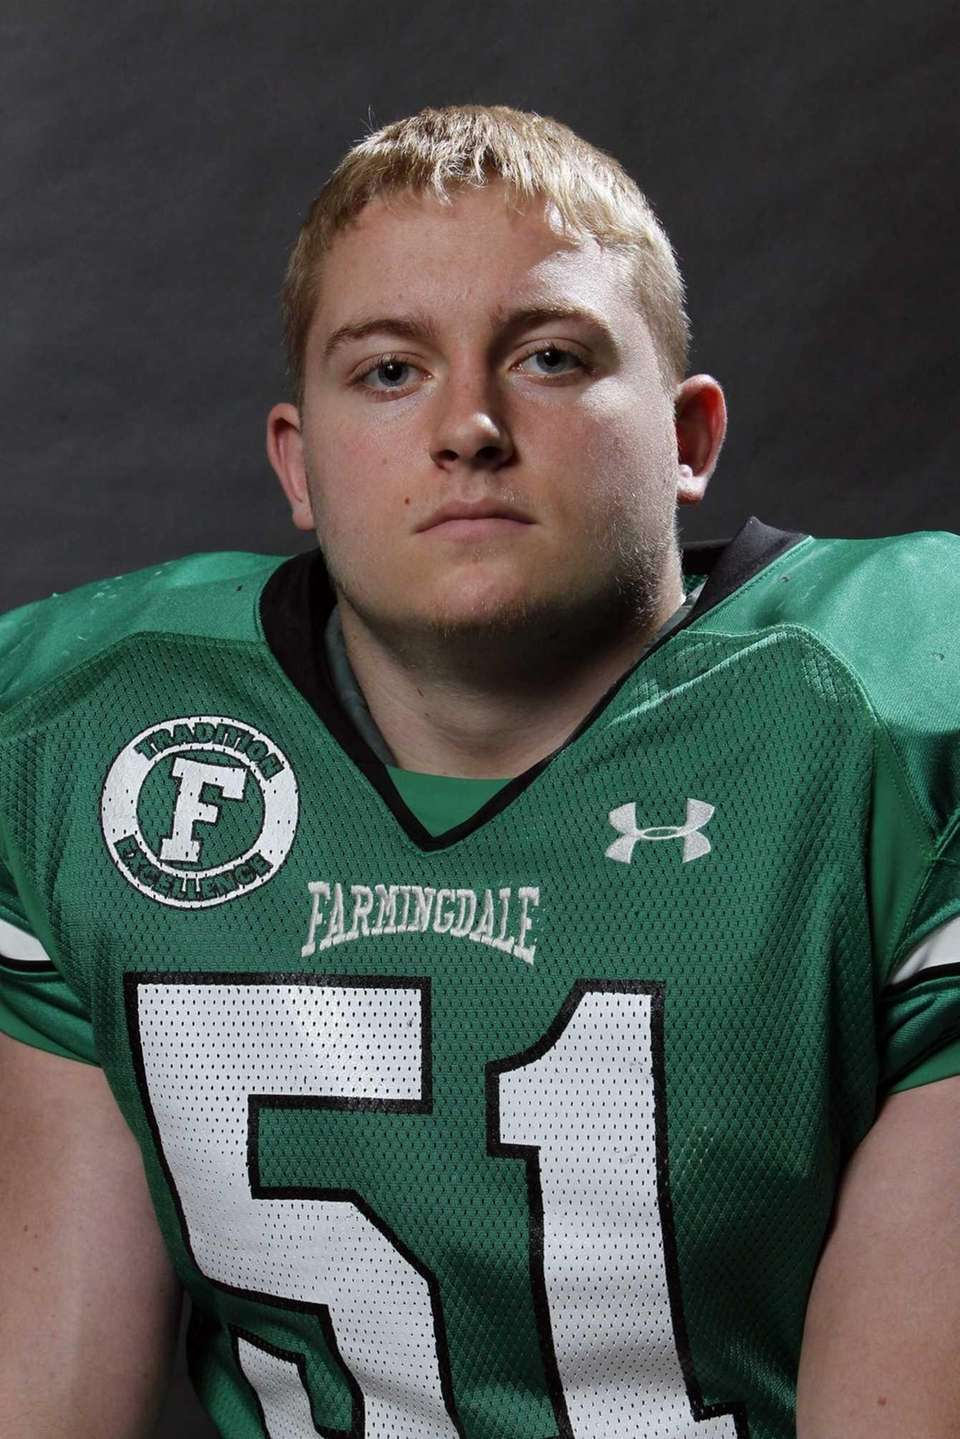 RYAN FEINER Farmingdale, MLB, 5-10, 210, Senior Made